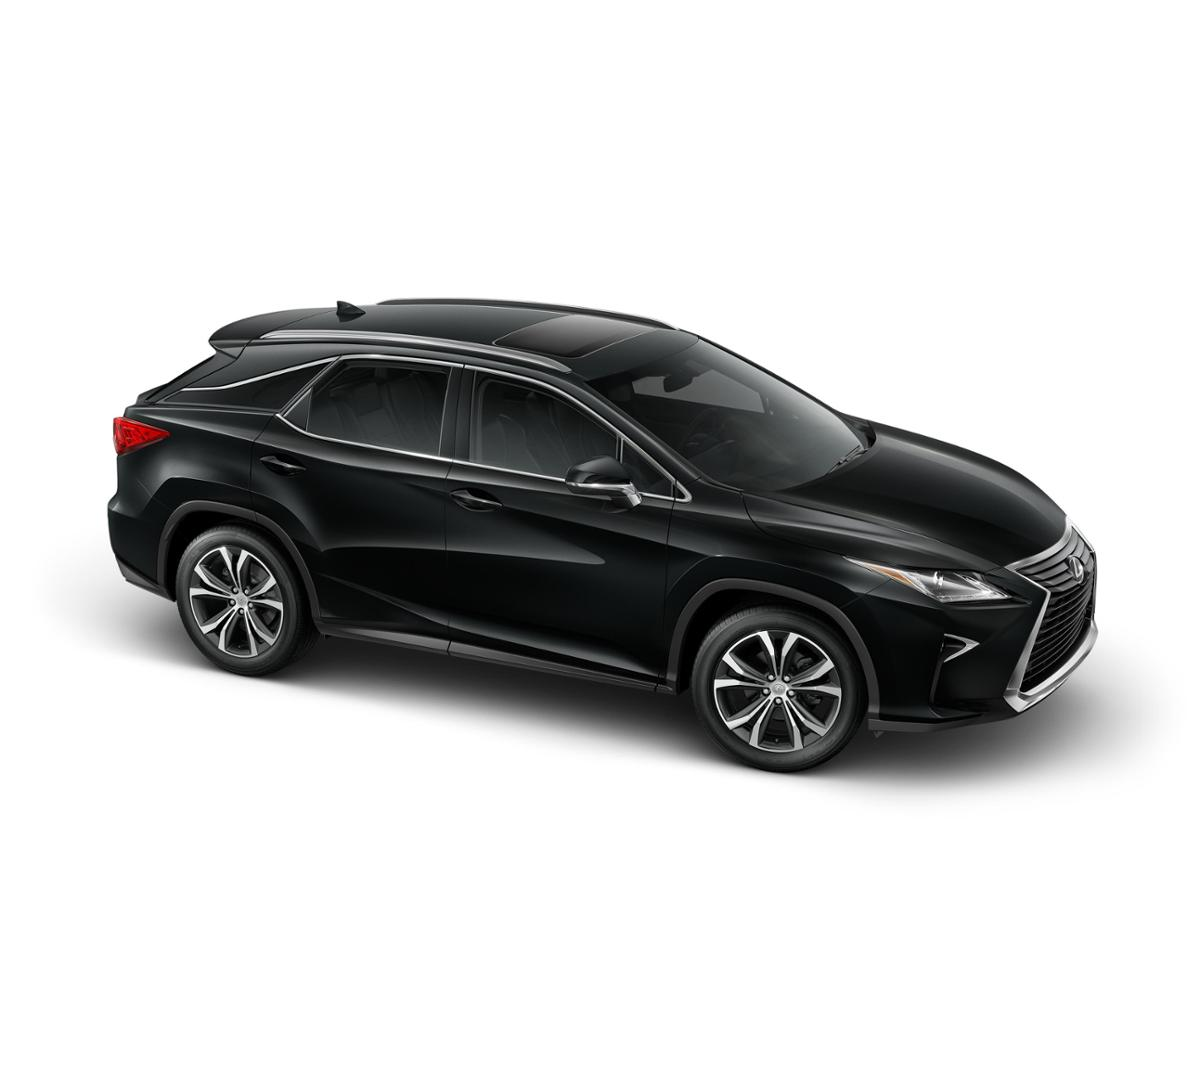 2018 lexus rx 350 at lexus of orlando 2t2zzmca5jc096218. Black Bedroom Furniture Sets. Home Design Ideas